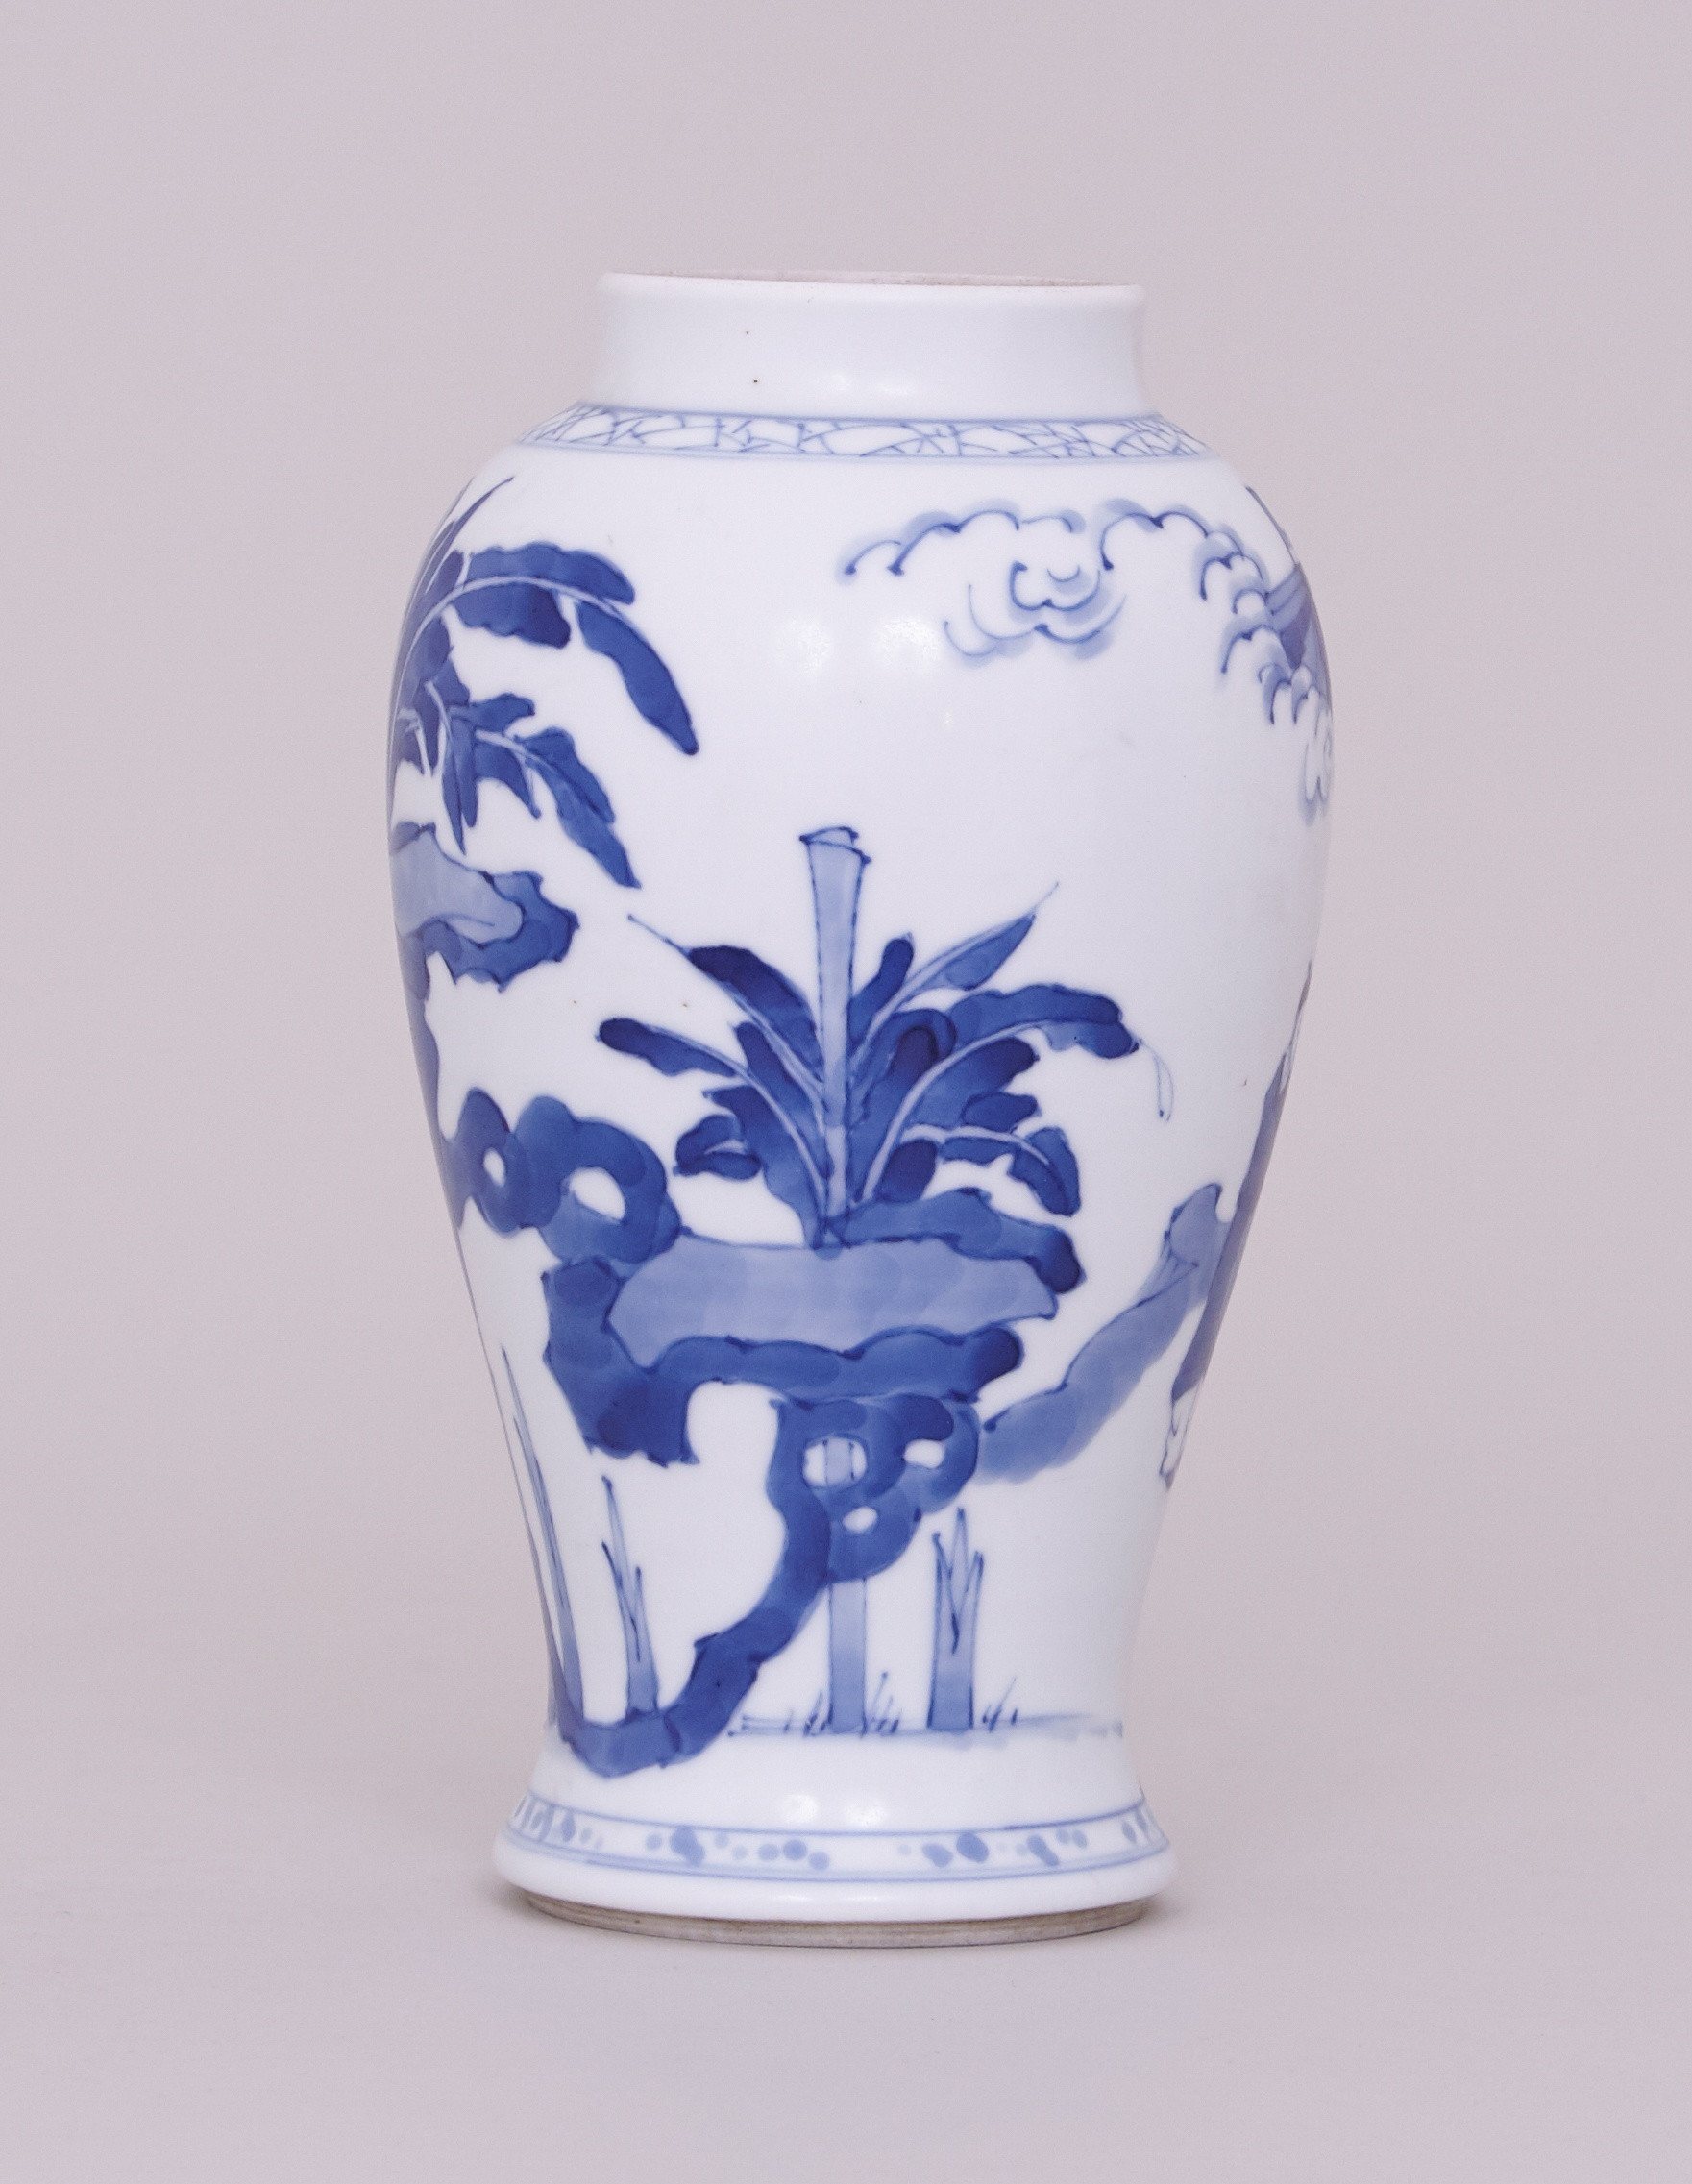 blue and white vases and urns of a chinese blue and white vase kangxi 1662 1722 anita gray throughout a chinese blue and white vase